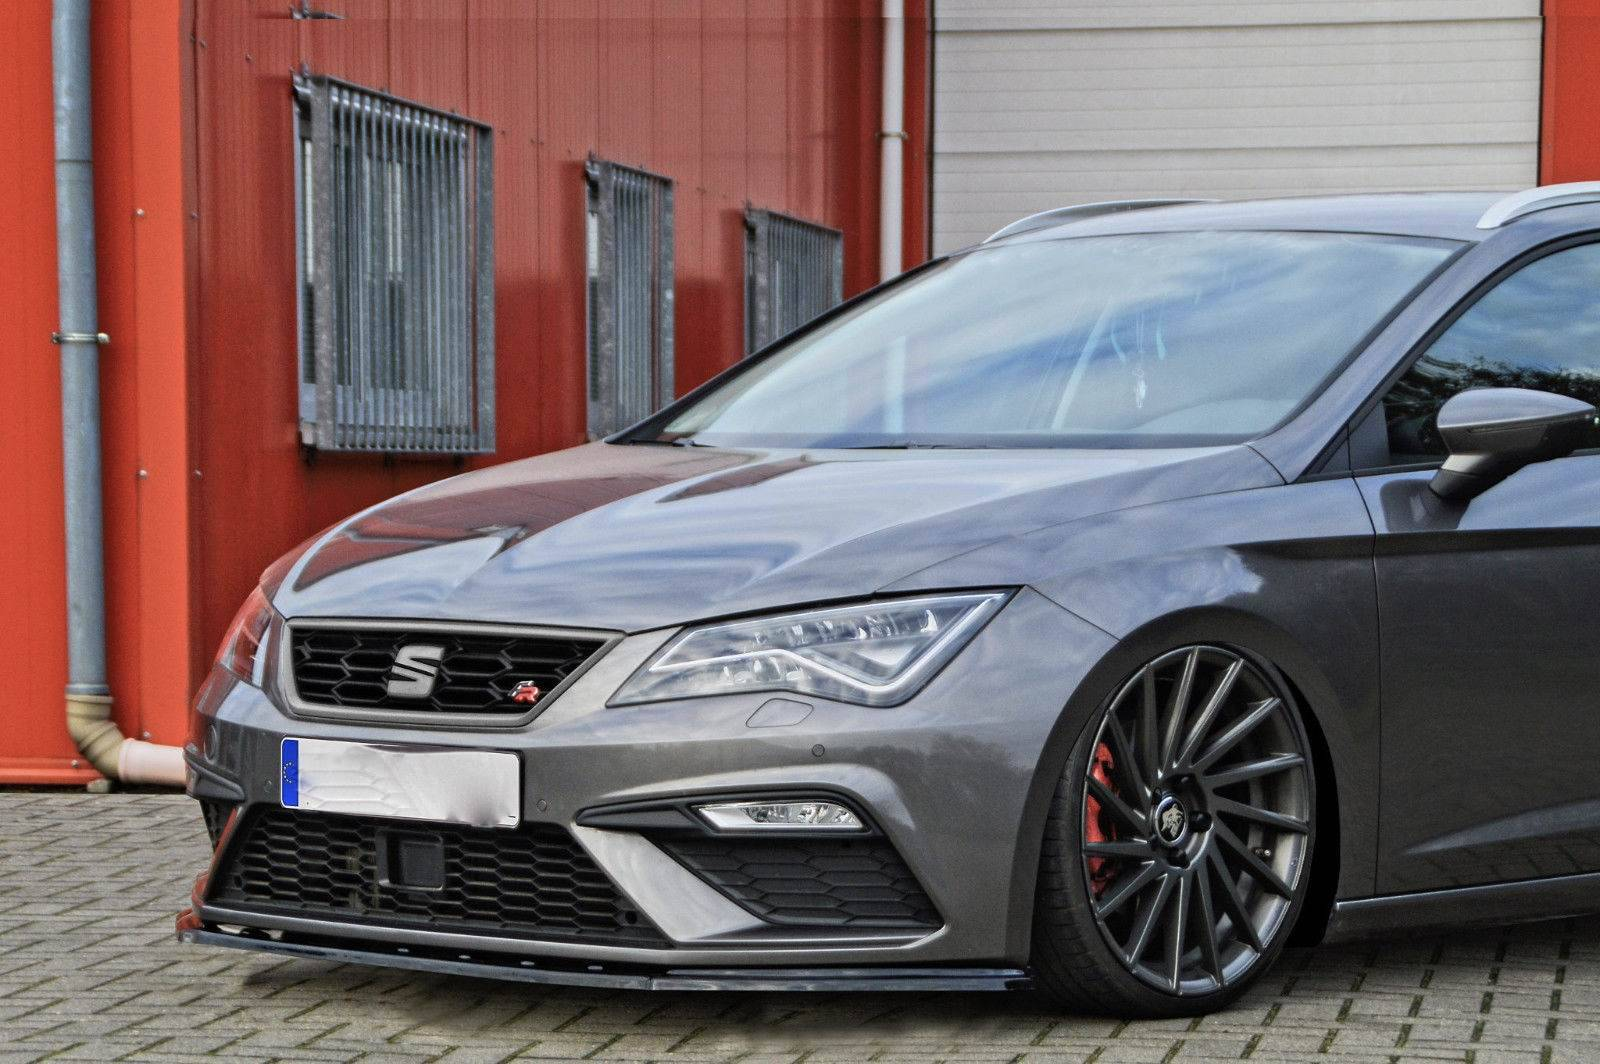 spoilerschwert frontspoiler seat leon 5f facelift fr cupra. Black Bedroom Furniture Sets. Home Design Ideas